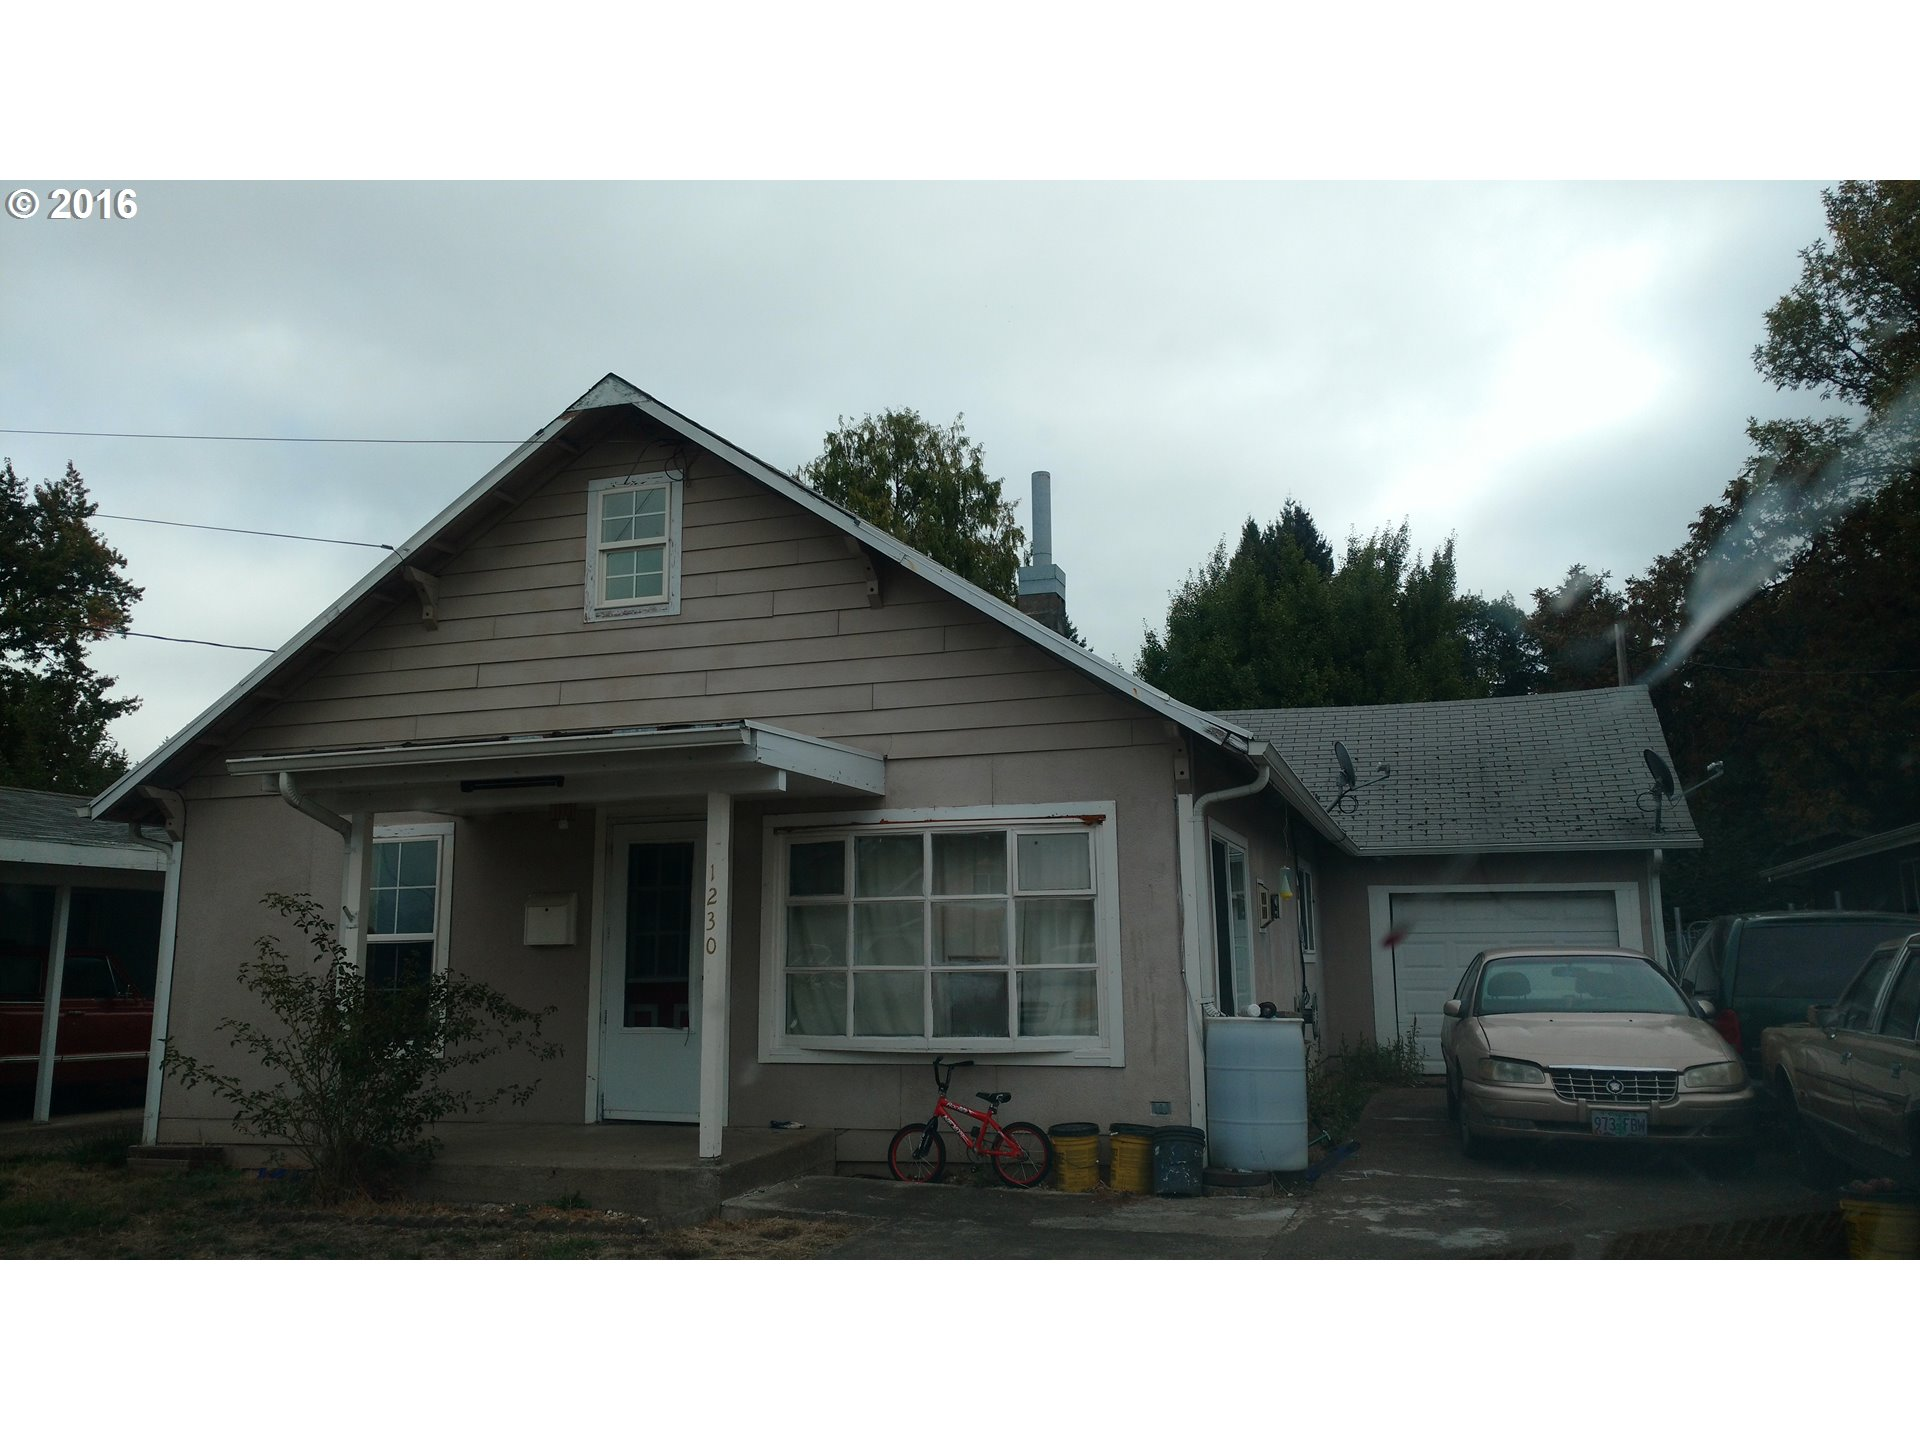 1230 S 7TH ST, Cottage Grove, OR 97424